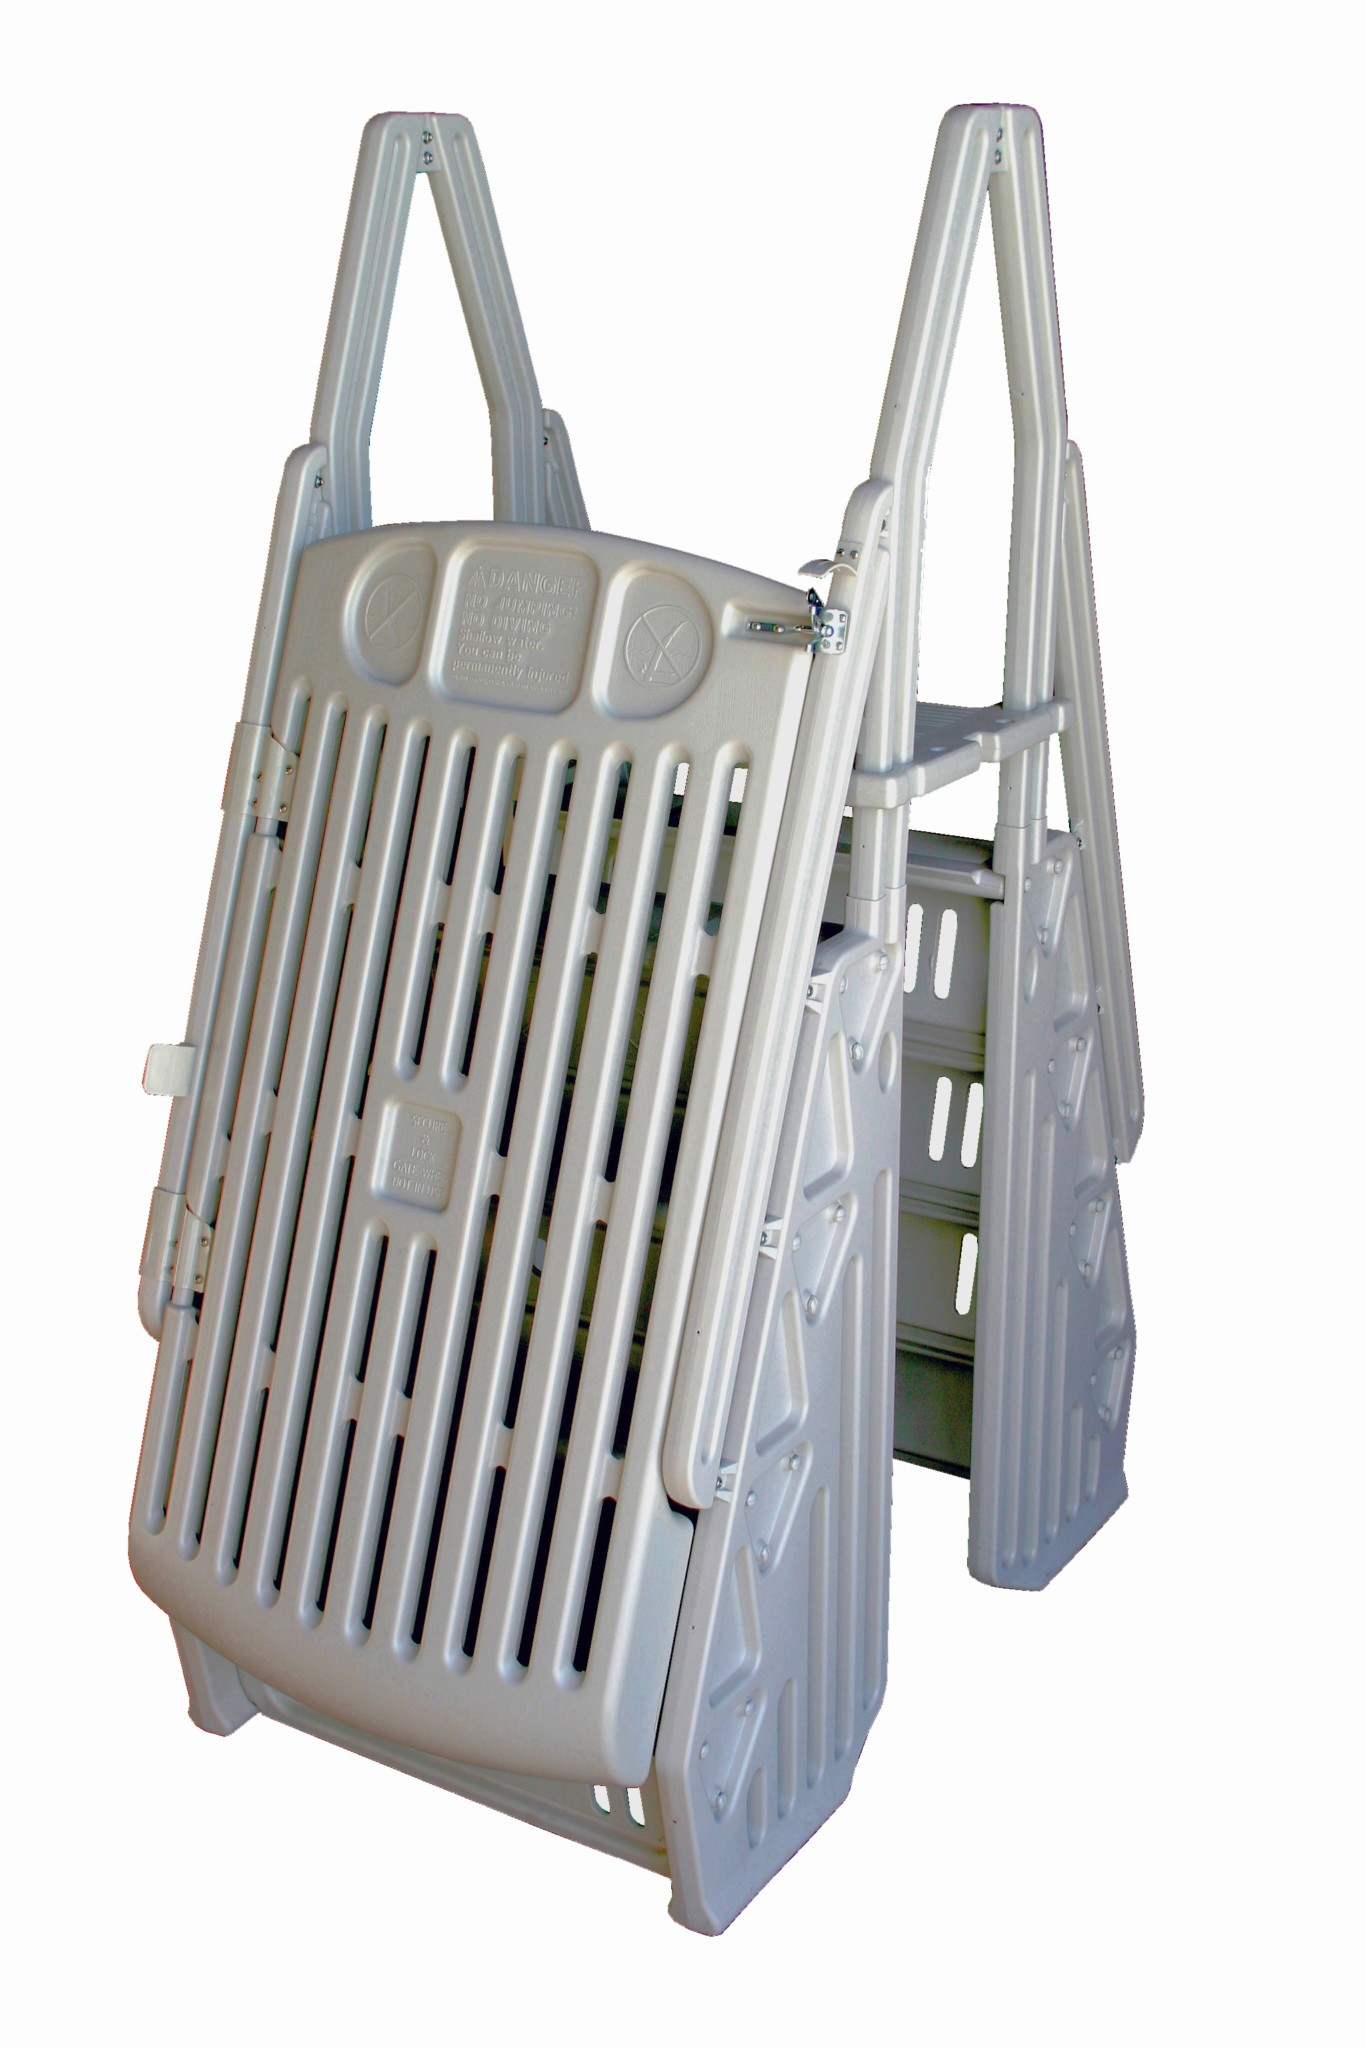 Swimming Pool Discounters32 Gated Grand Entry System Closeout